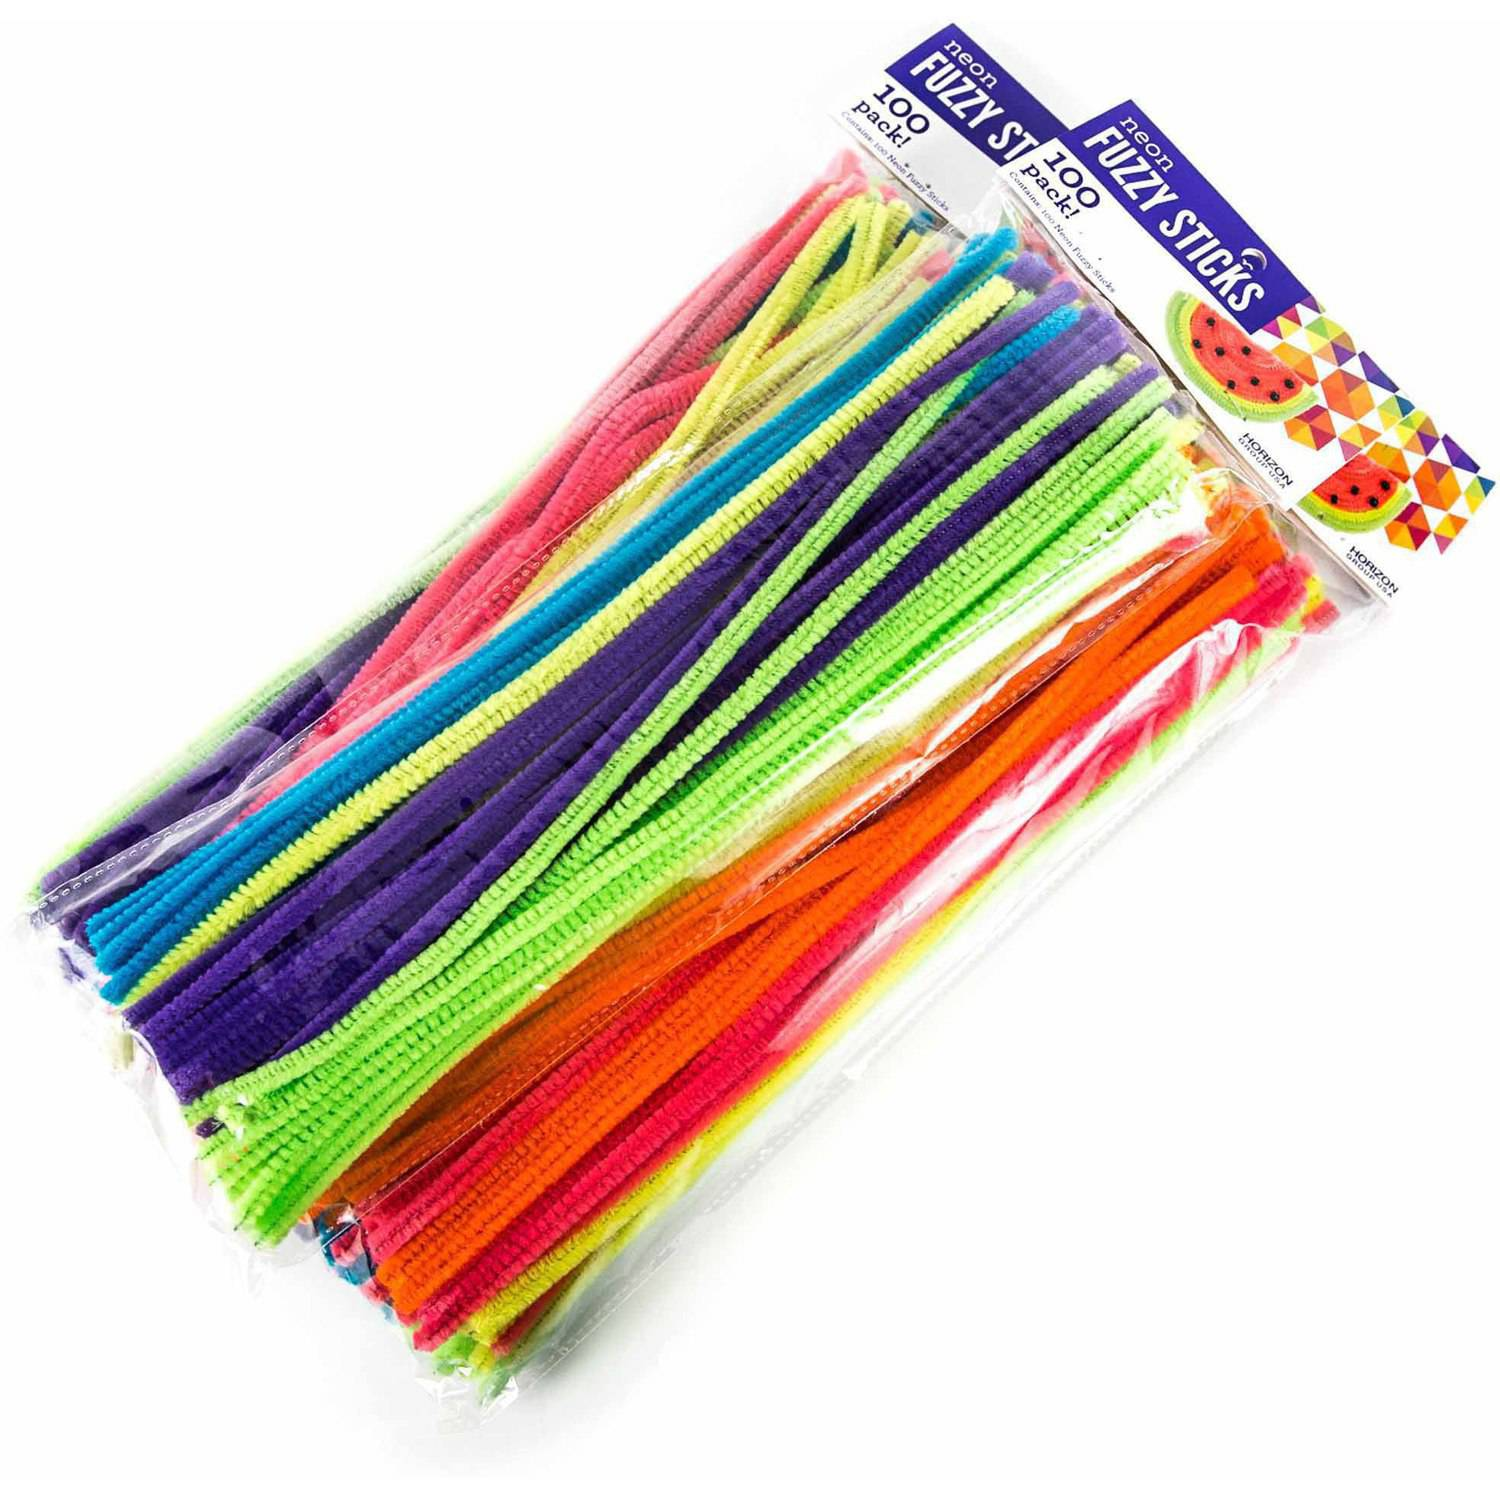 Horizon Group USA Neon Fuzzy Sticks, 3pk